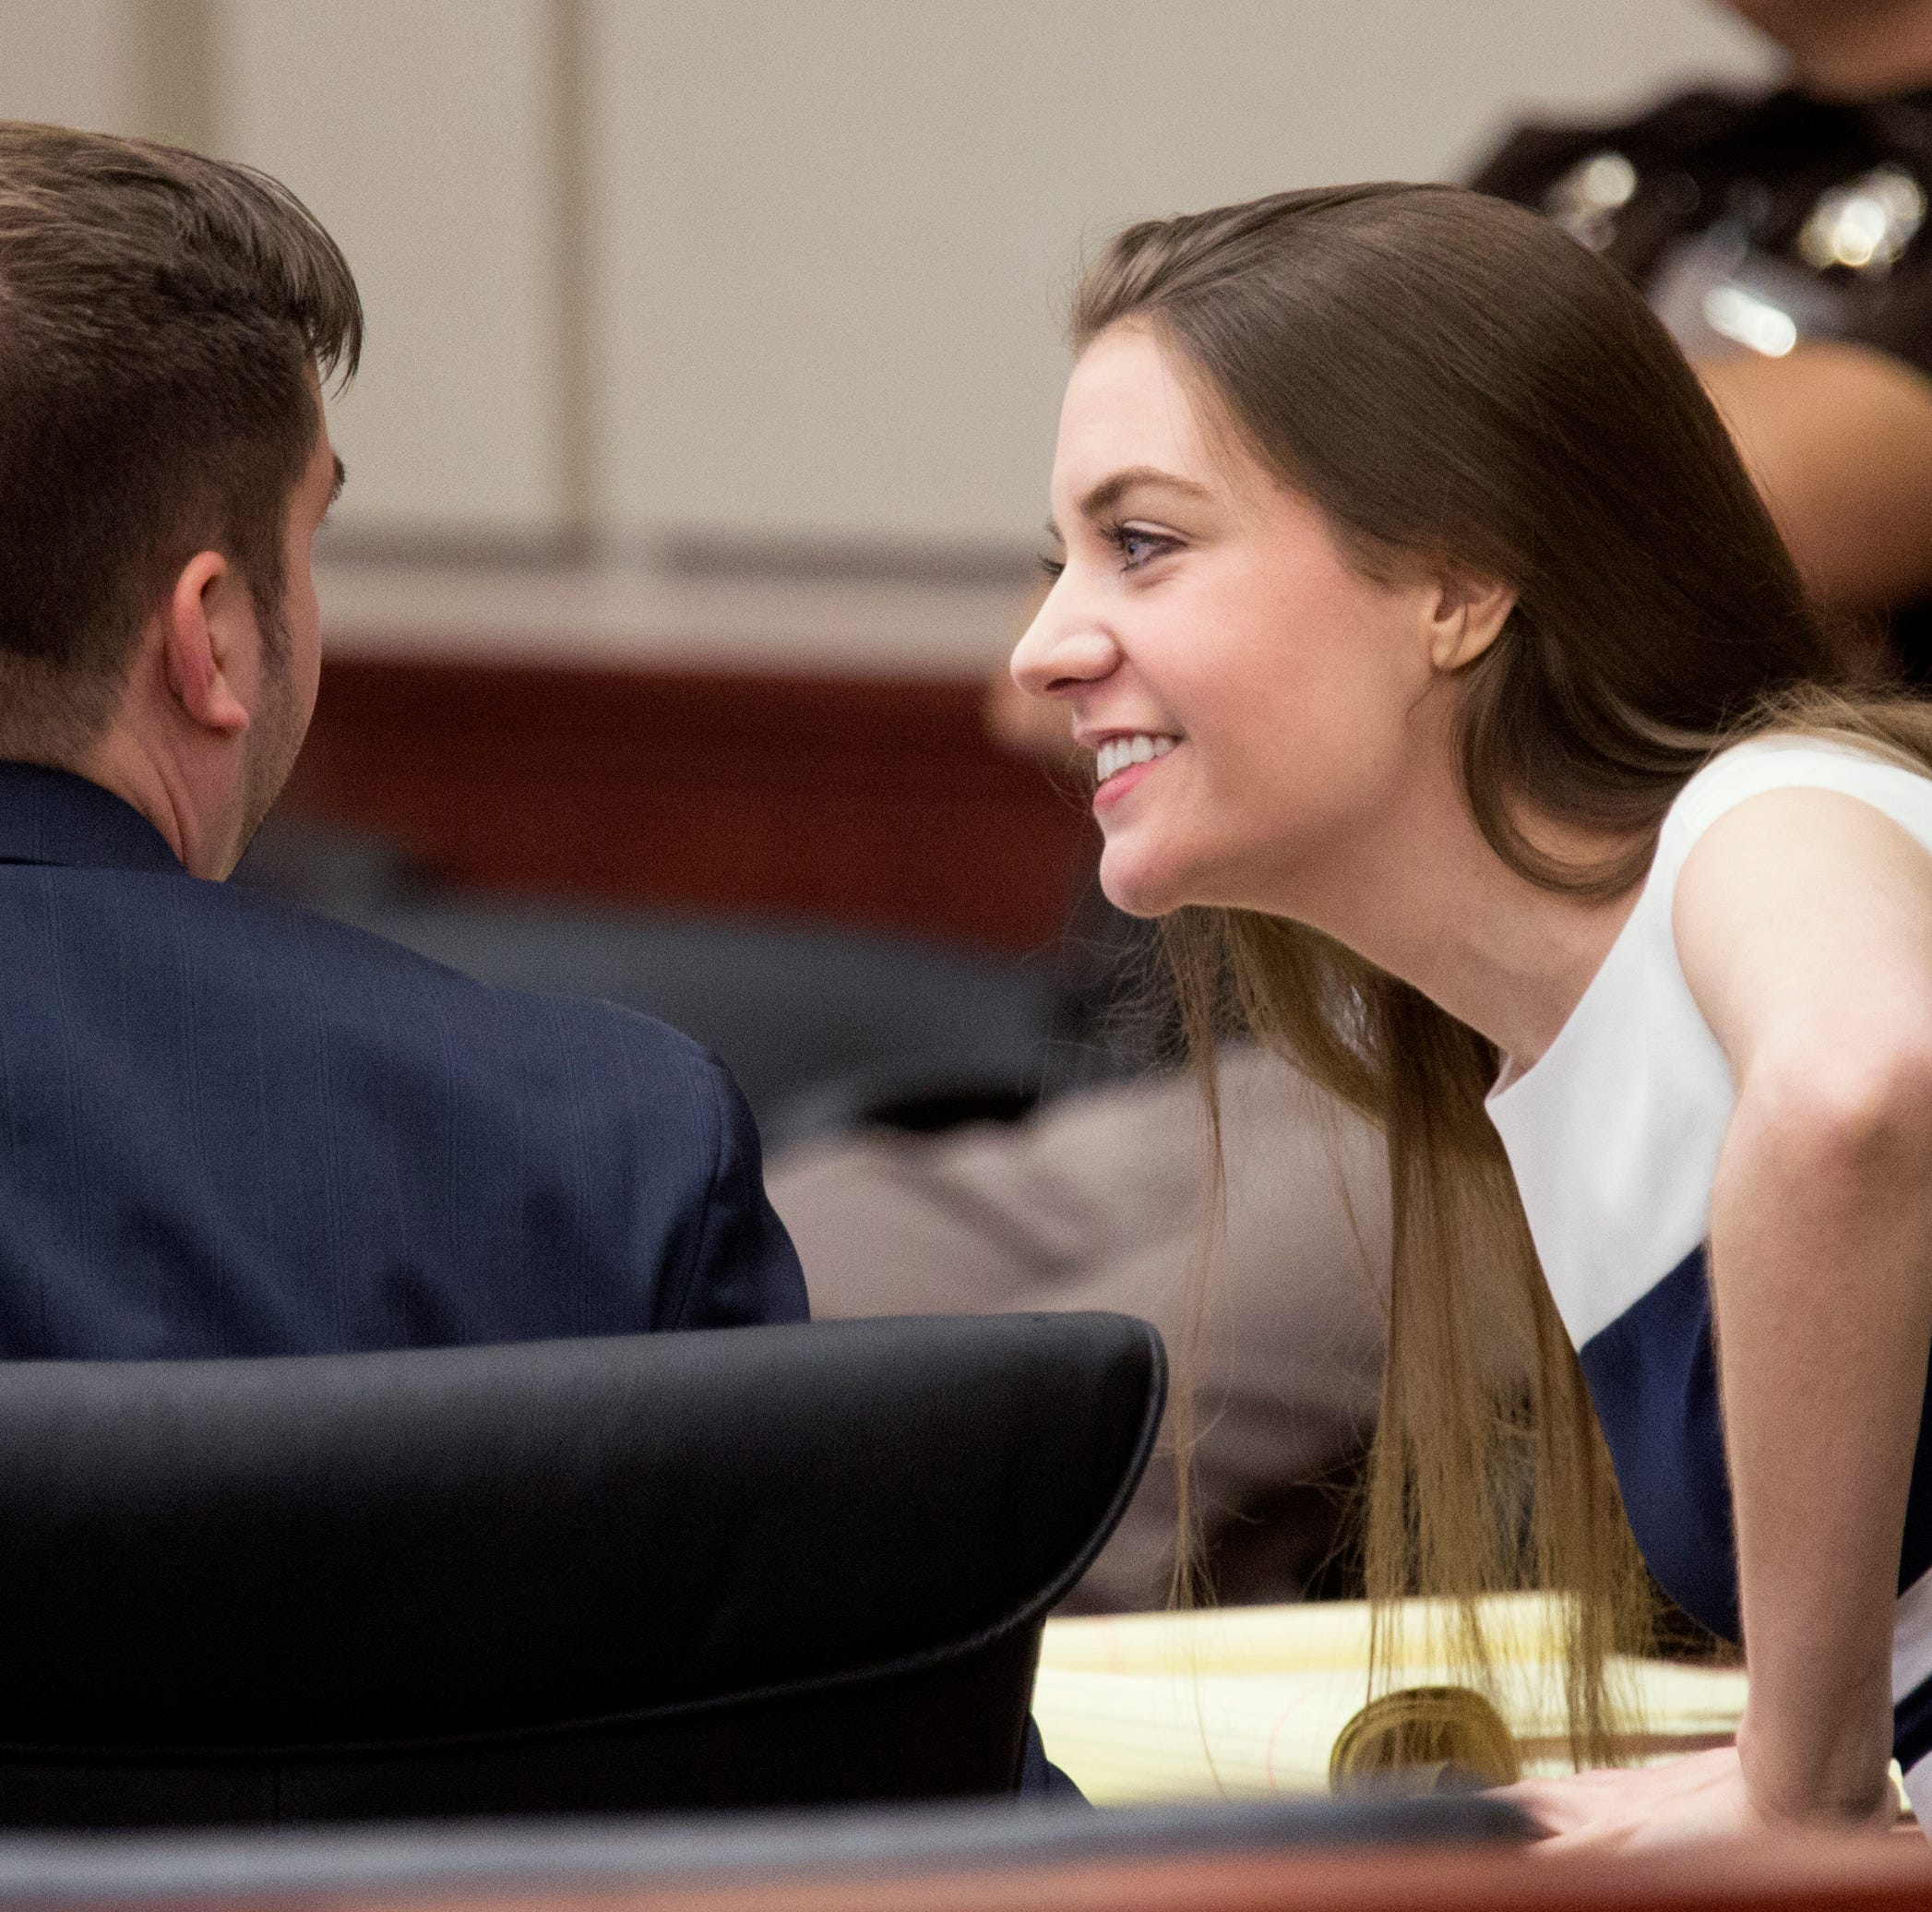 Shayna Hubers trial: 'Shoot and kill him and play like it's an accident,' she texted friend